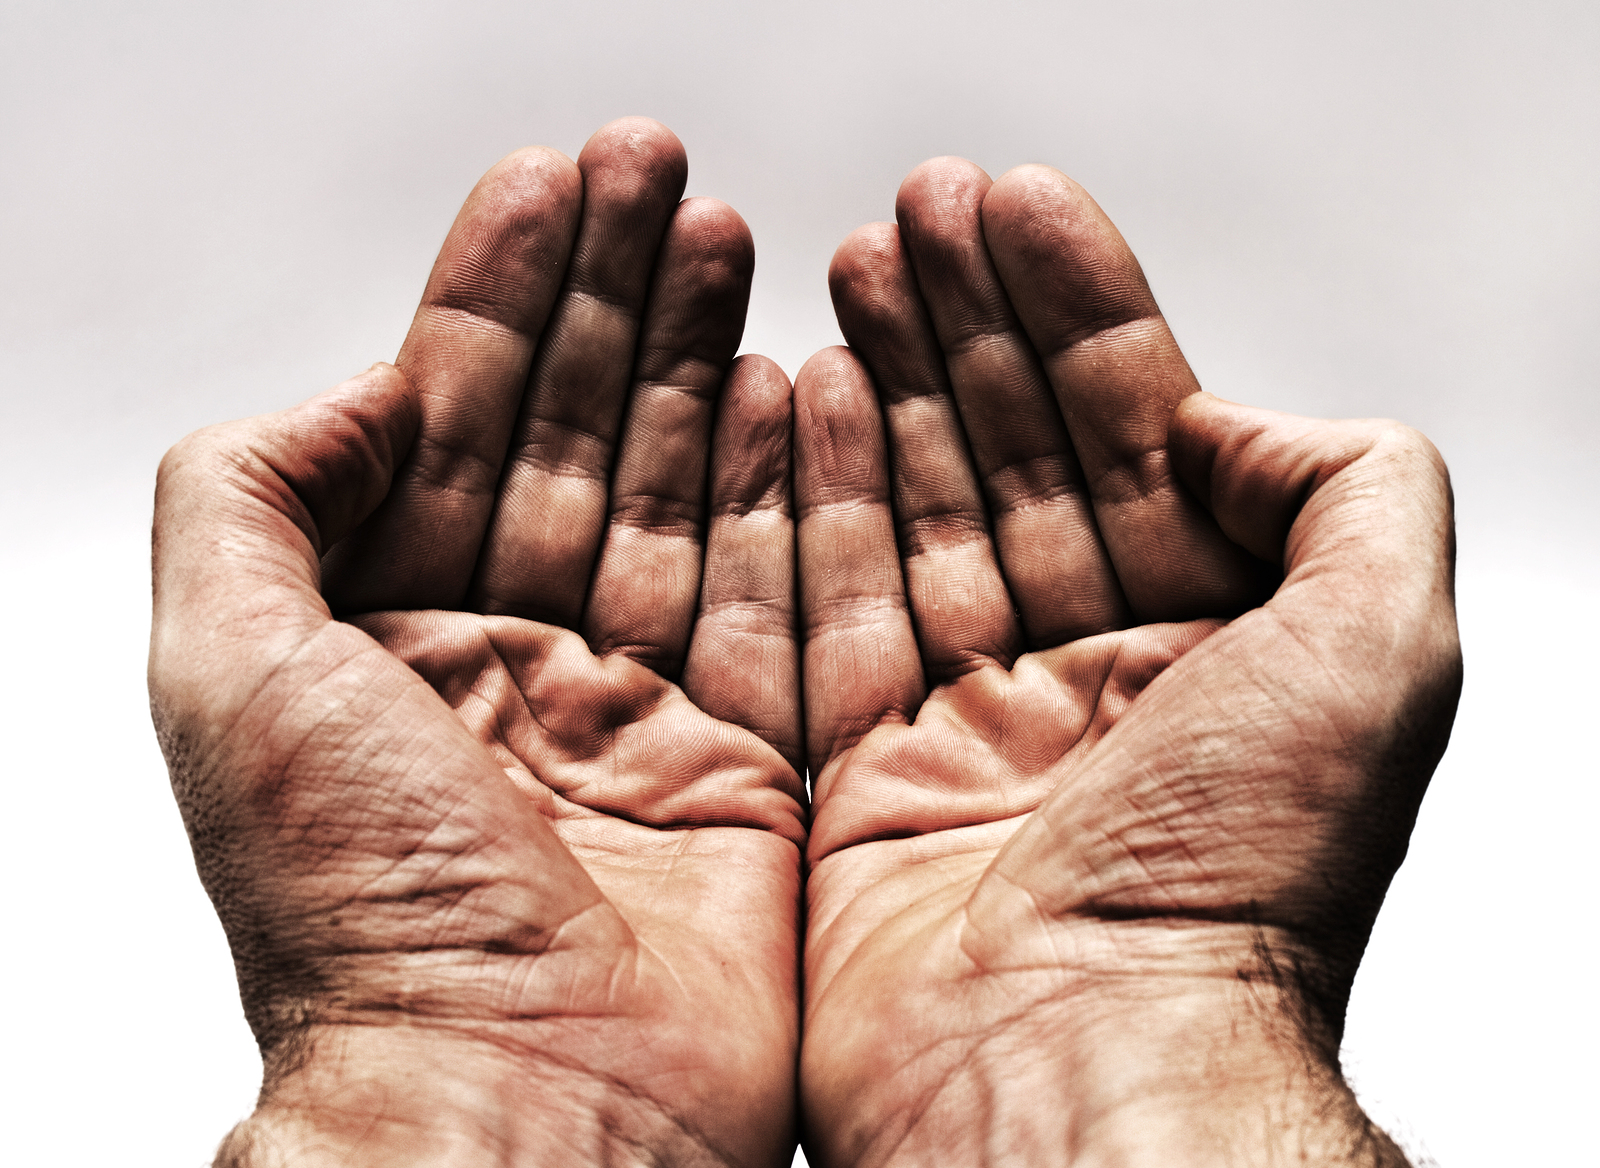 bigstock hands 2072159 Mindfulness kindness exercise through one selfless act every day